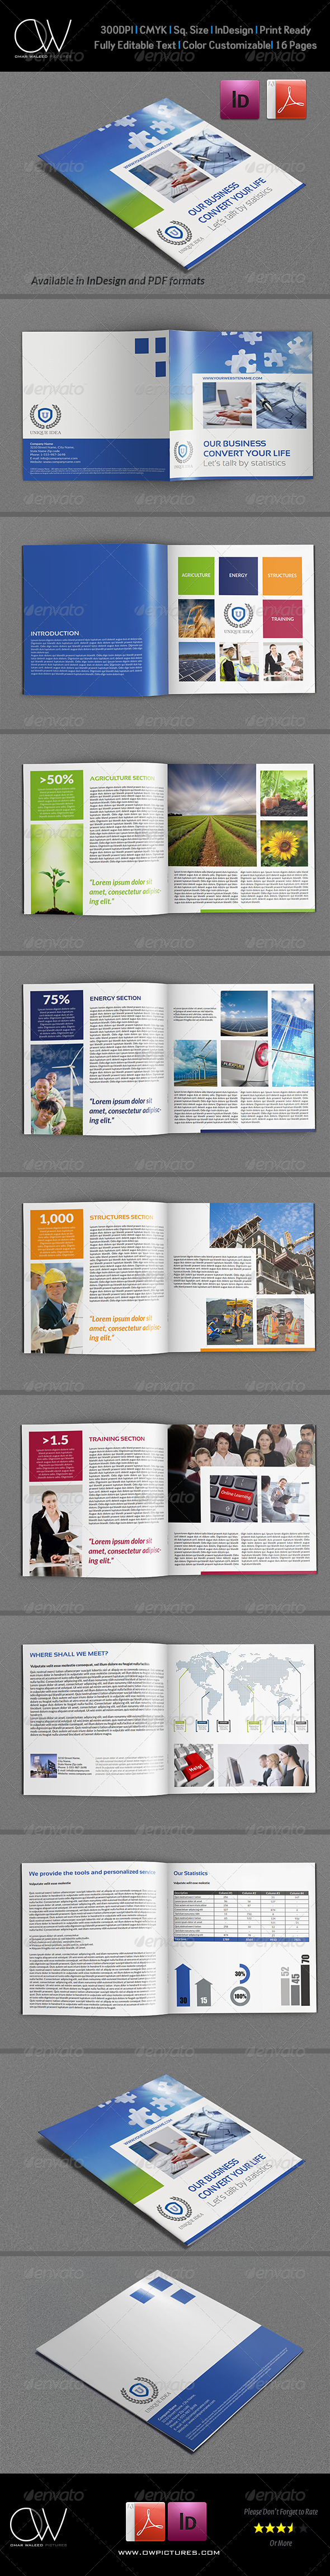 GraphicRiver Company Brochure Template Vol.32 16 Pages 7264632